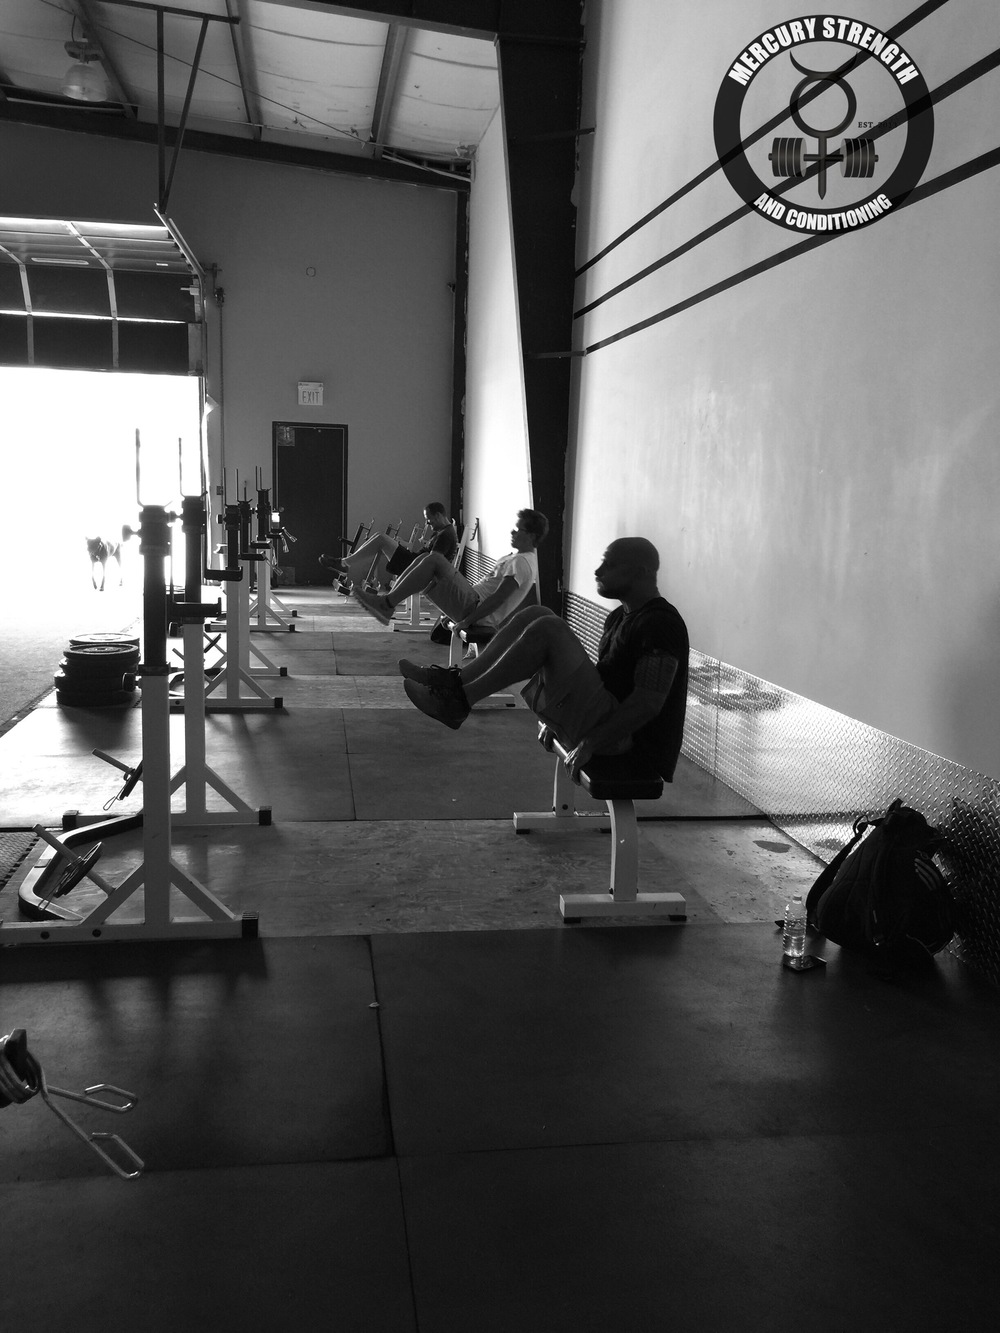 Sean, Chris, and Andrew performing some v-crunches during a humid morning session.